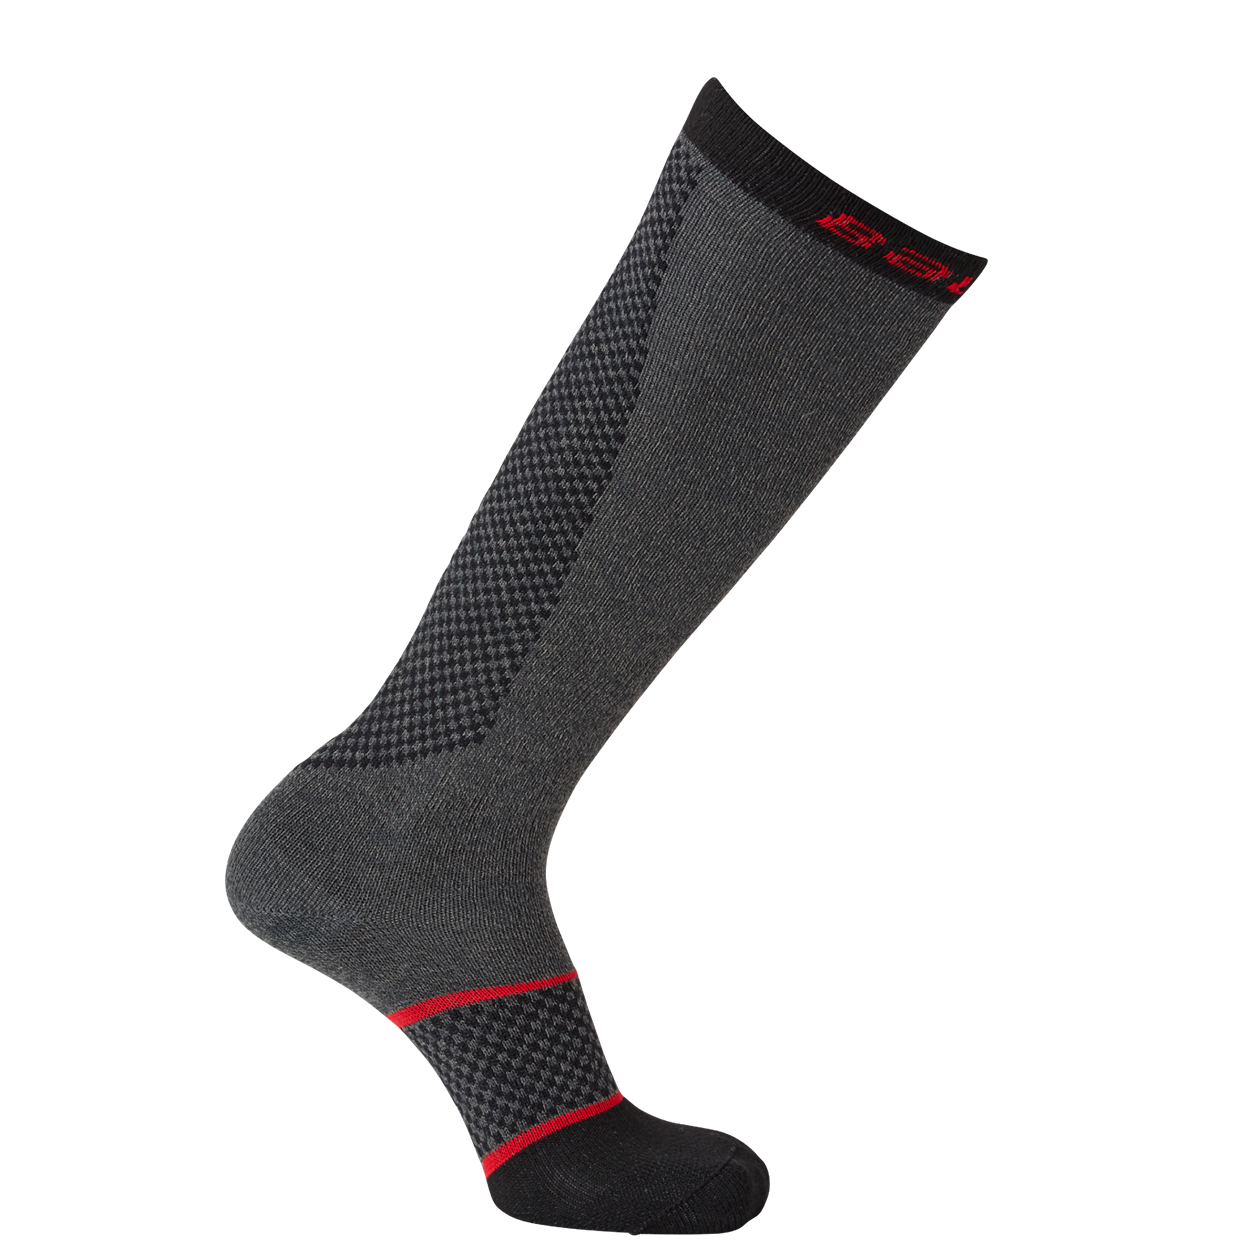 S19 PRO CUT RESIST Tall Skate Sock,,moyen